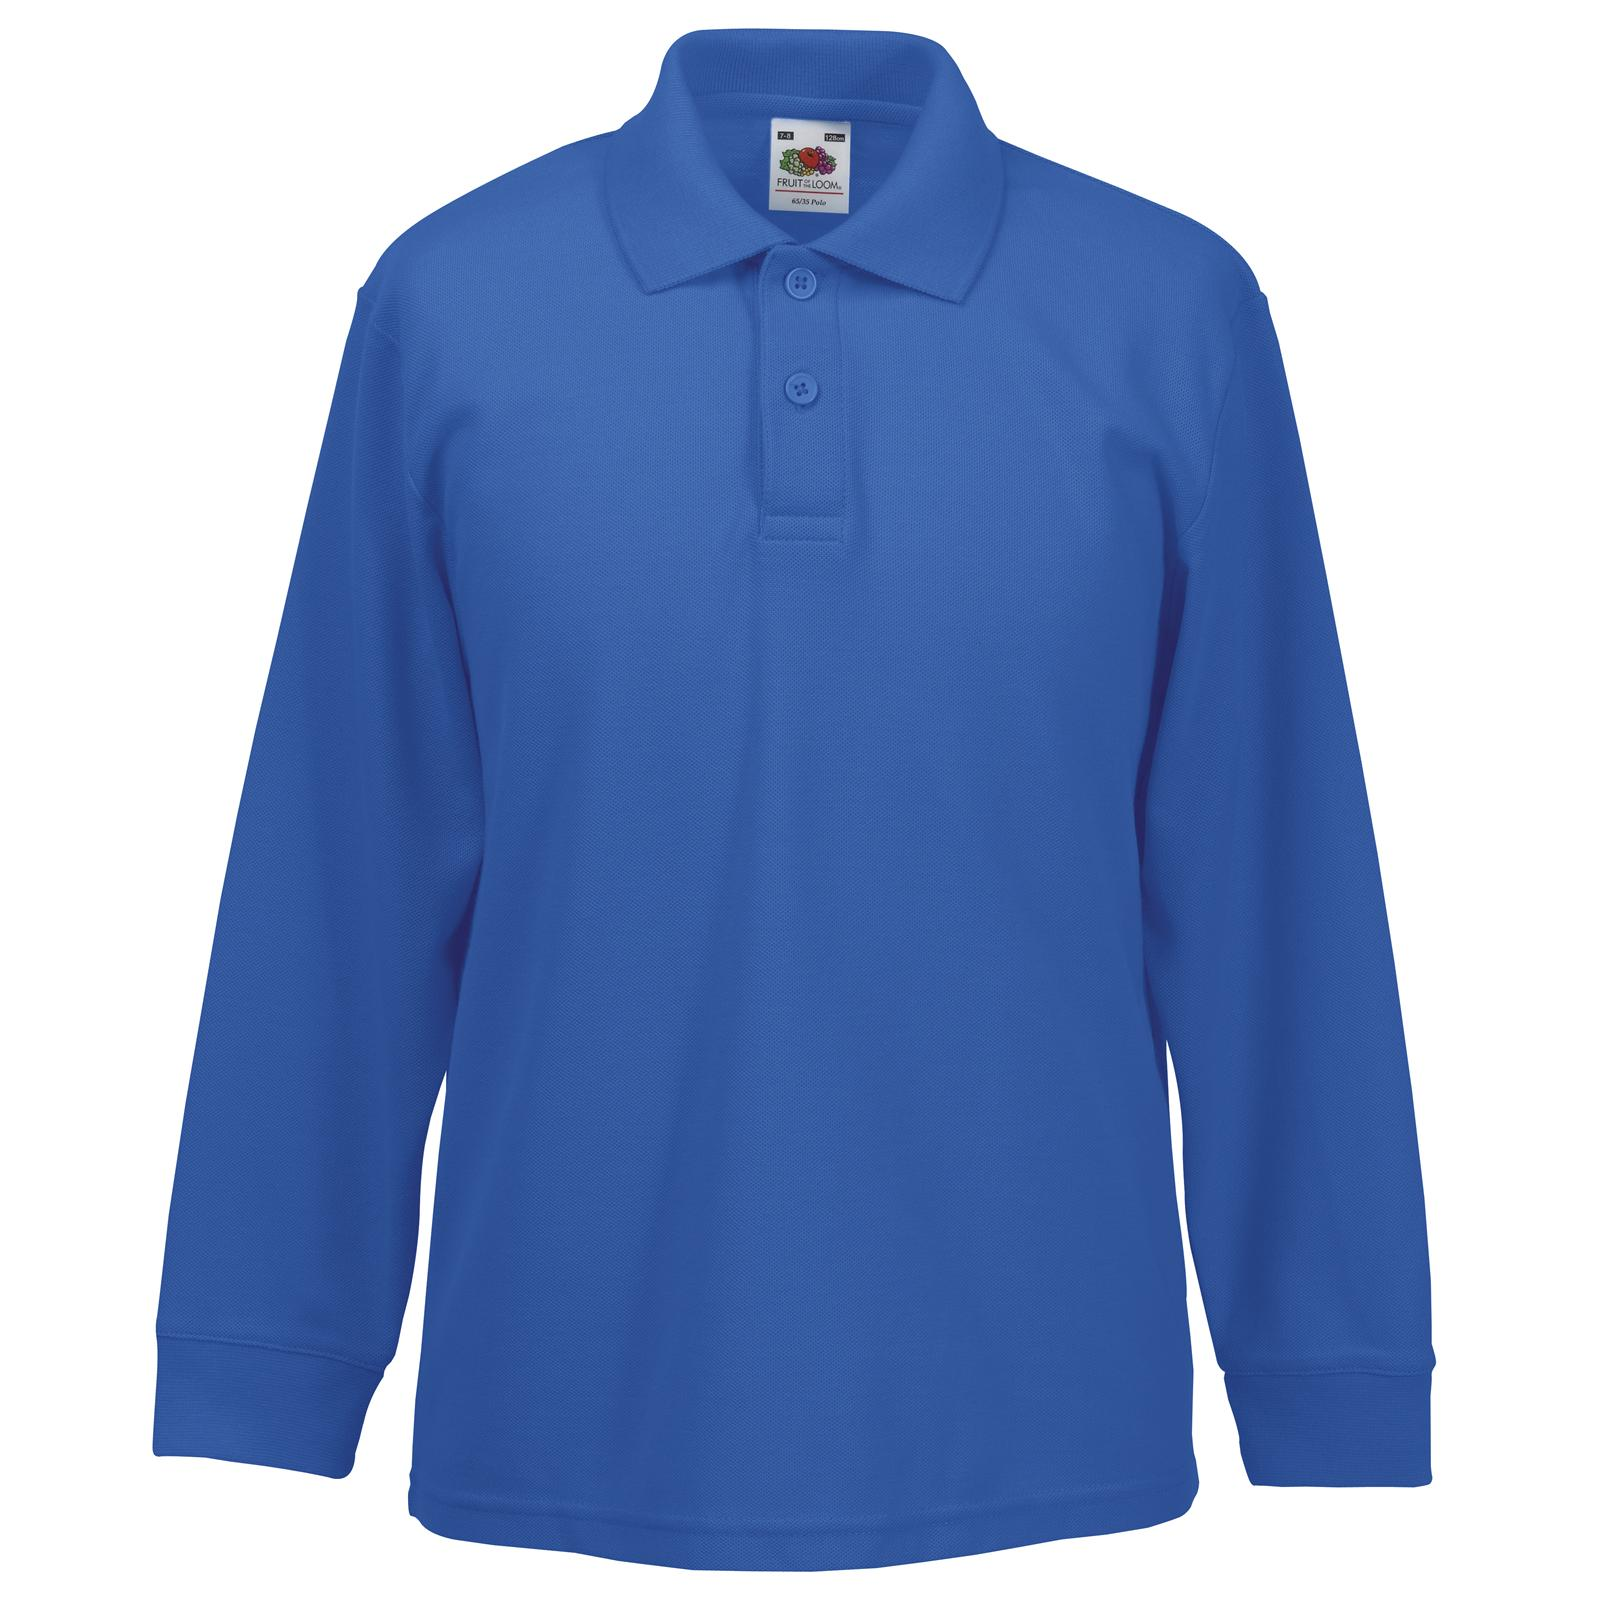 Embroidered polo shirts fruit of the loom for Custom embroidered t shirts no minimum